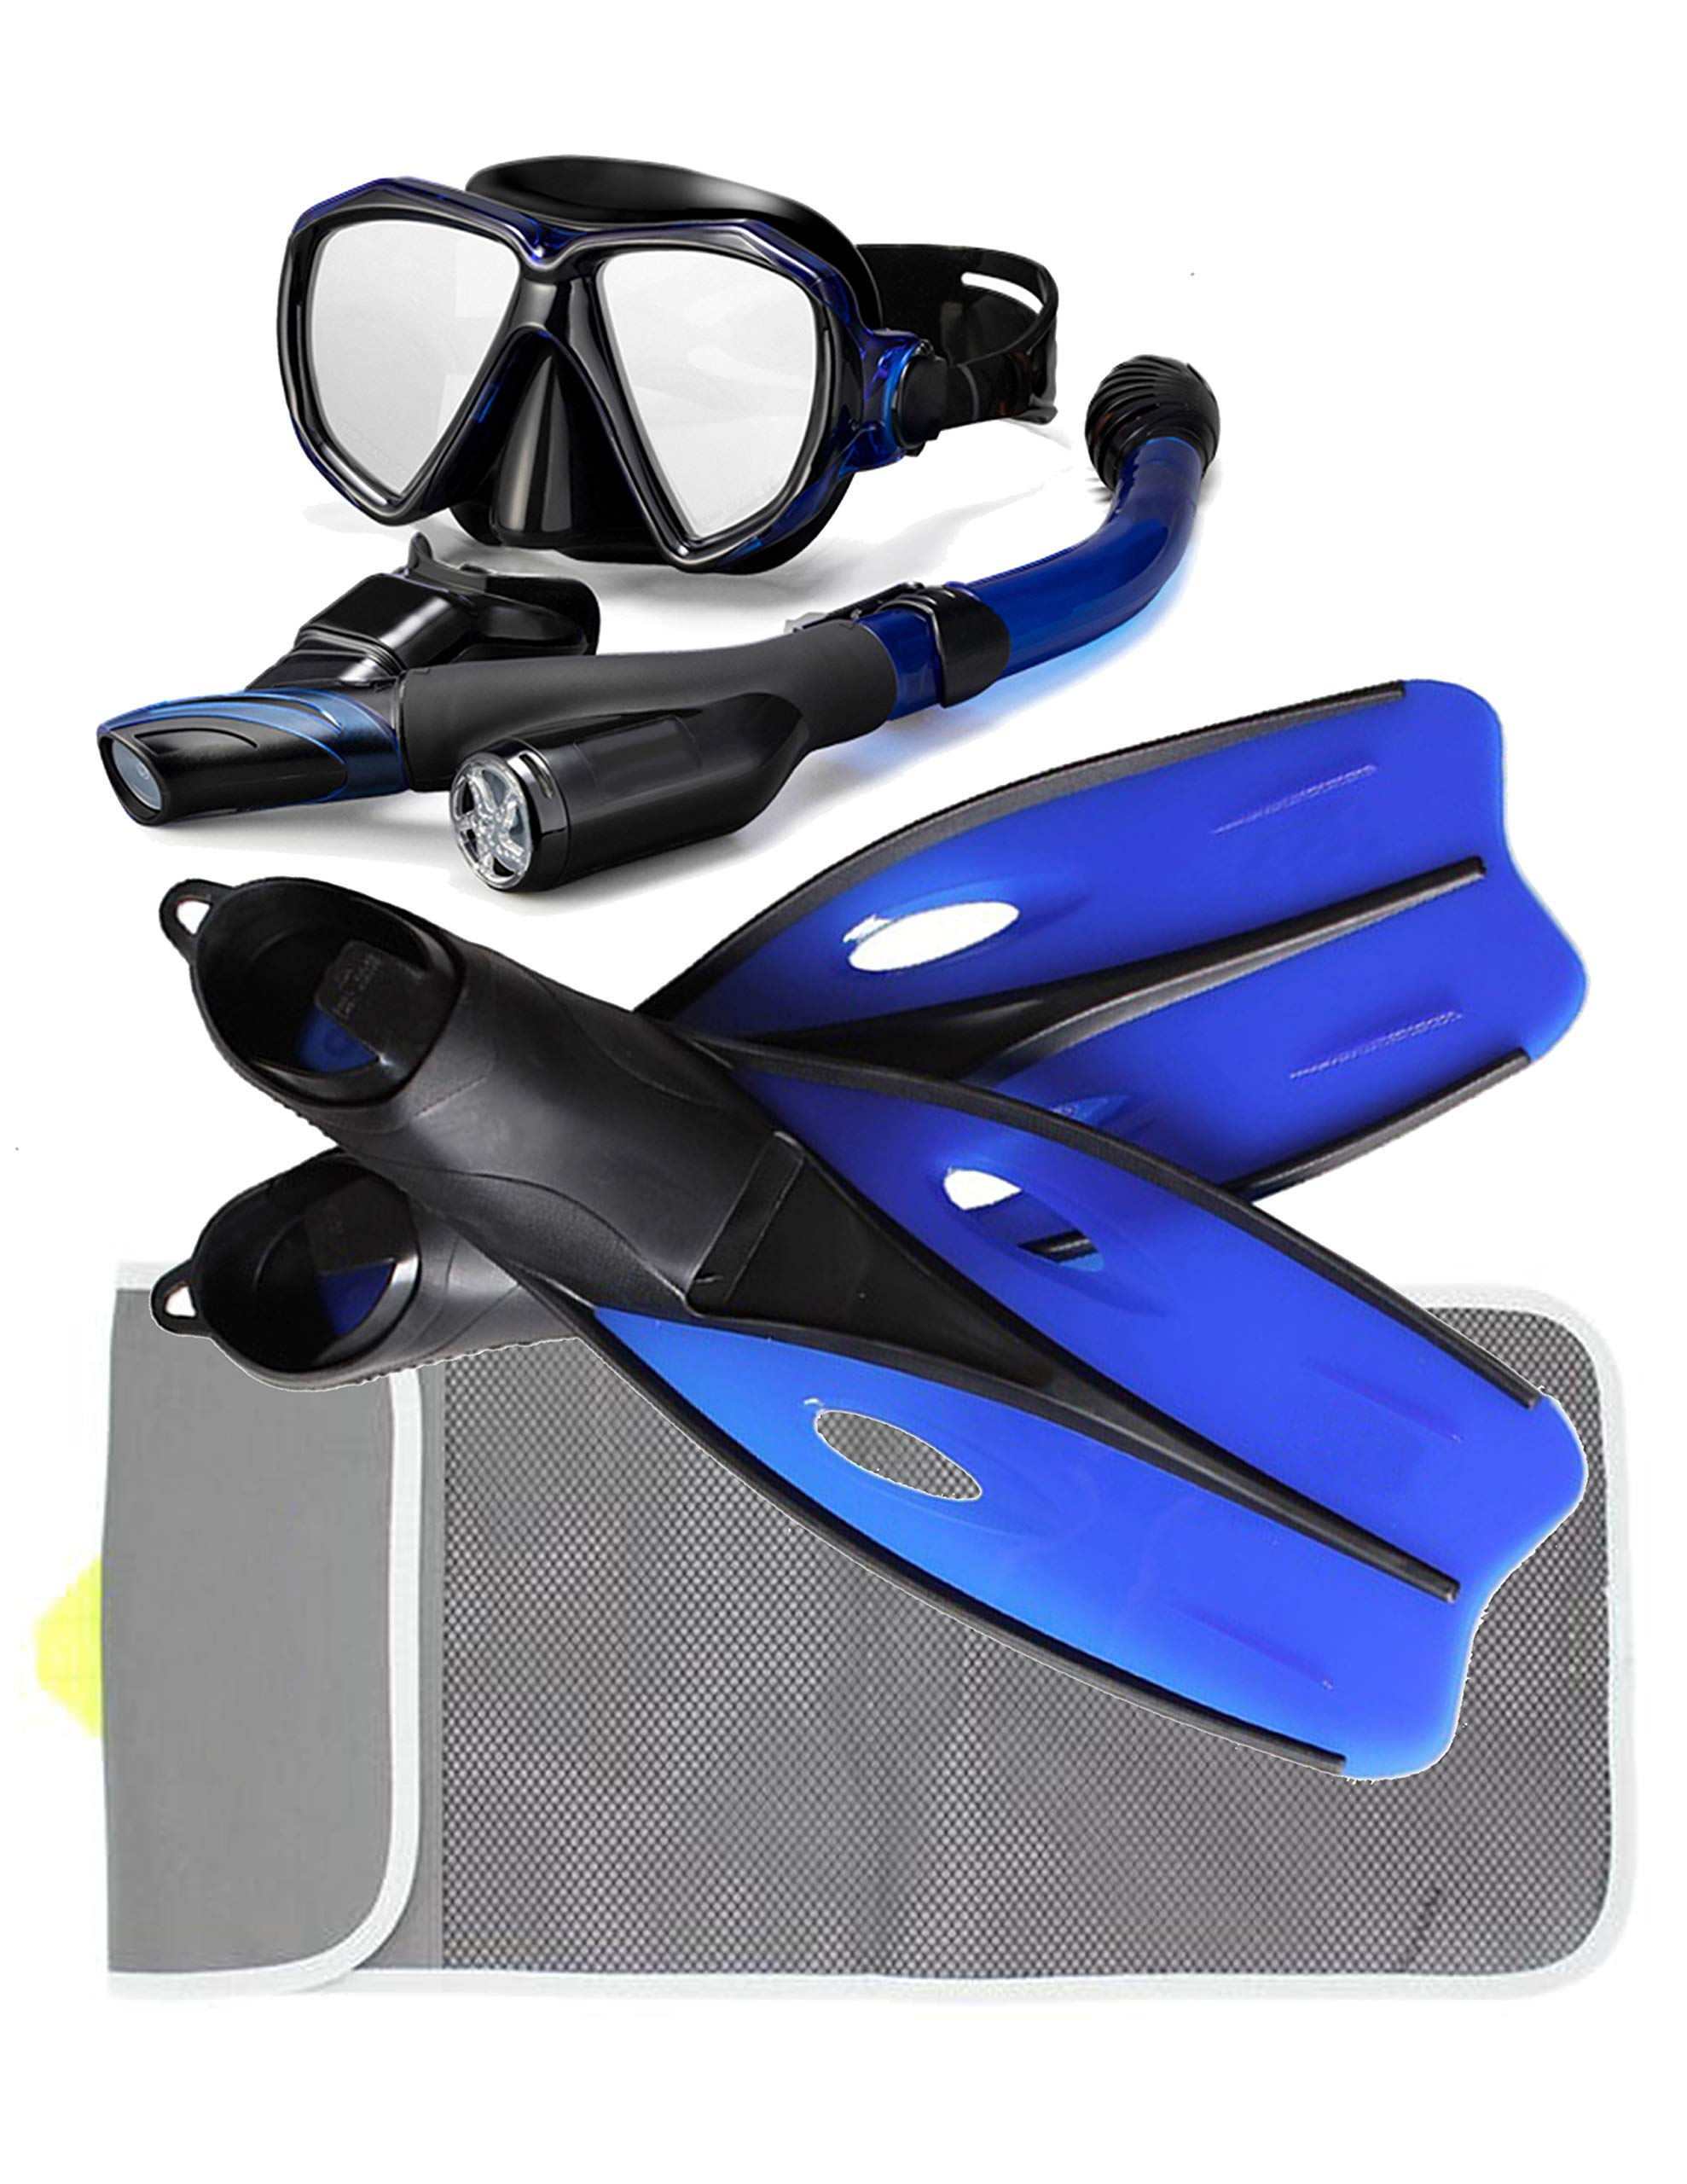 P+Co Snorkel/Scuba Diving Mask & Long Fin Set in Mesh Bag Gear Set- Adult Snokel, Mask, Fins and Travel Bag (Blue, L) by P+Co